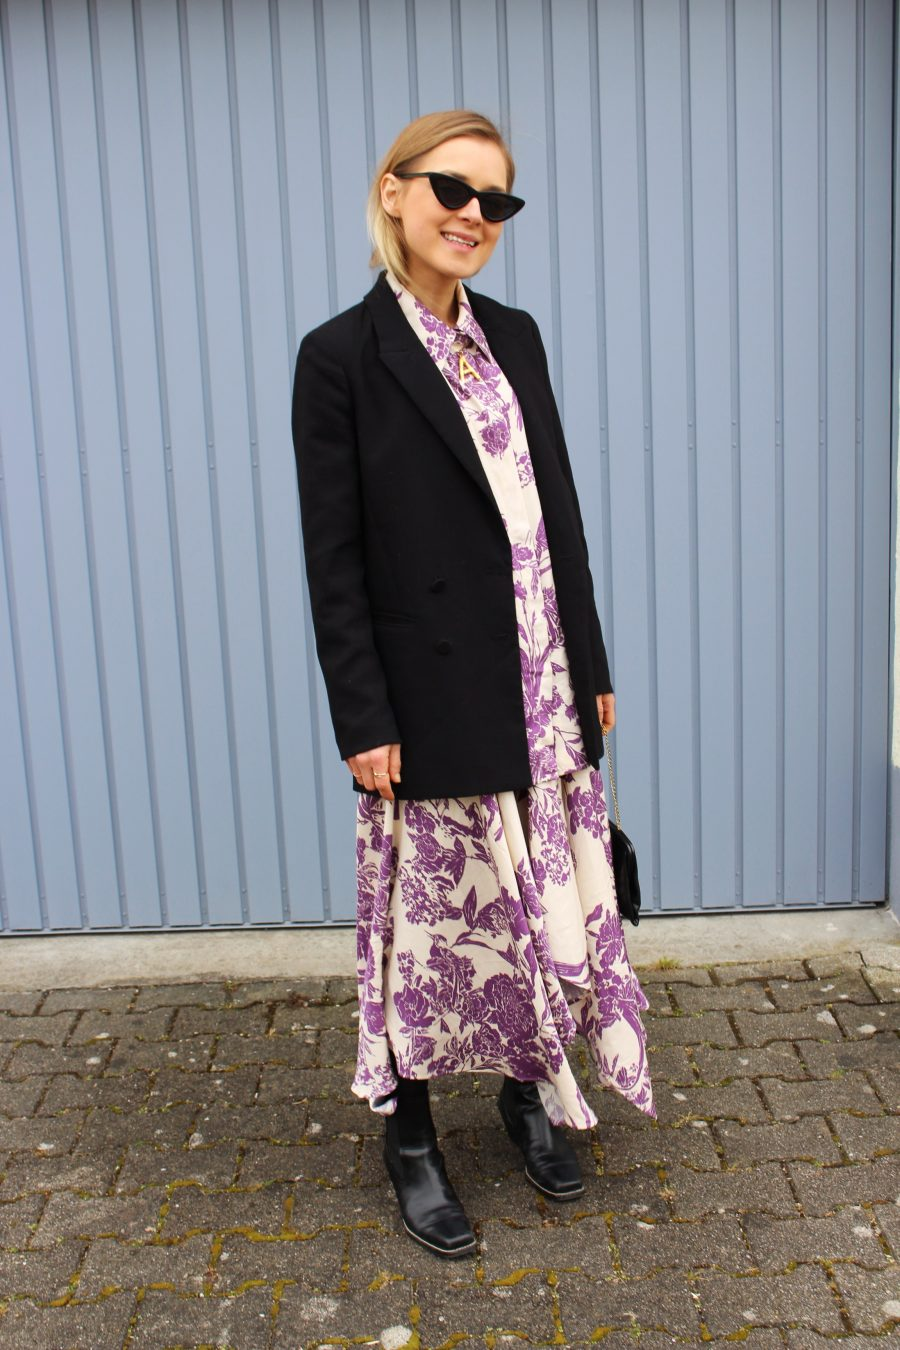 Céline floral skirt and shirt